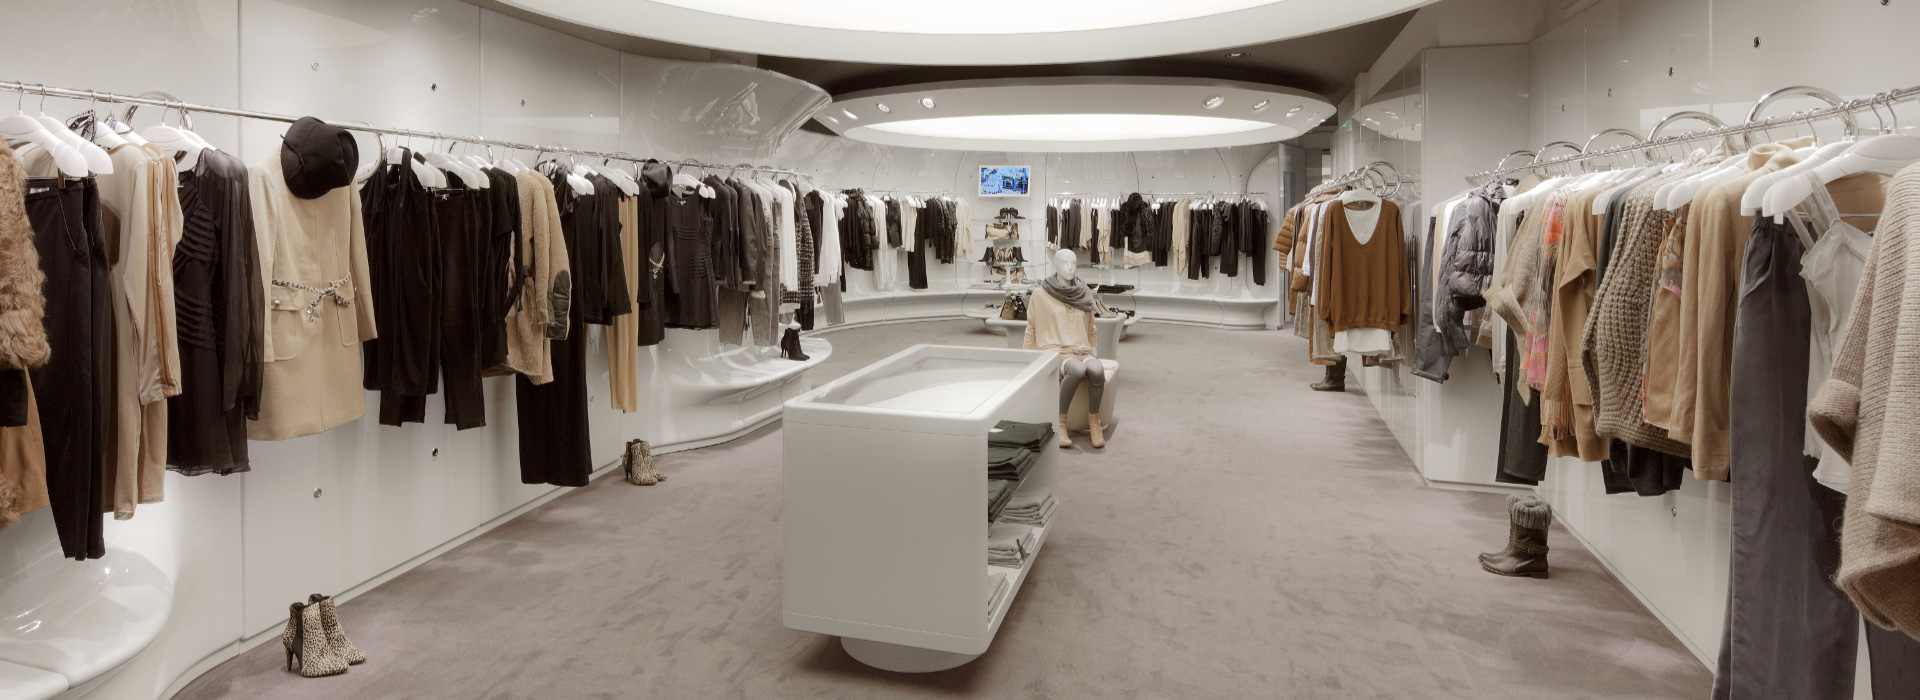 Fashion Shops Interior Design Solutions HCSdesign